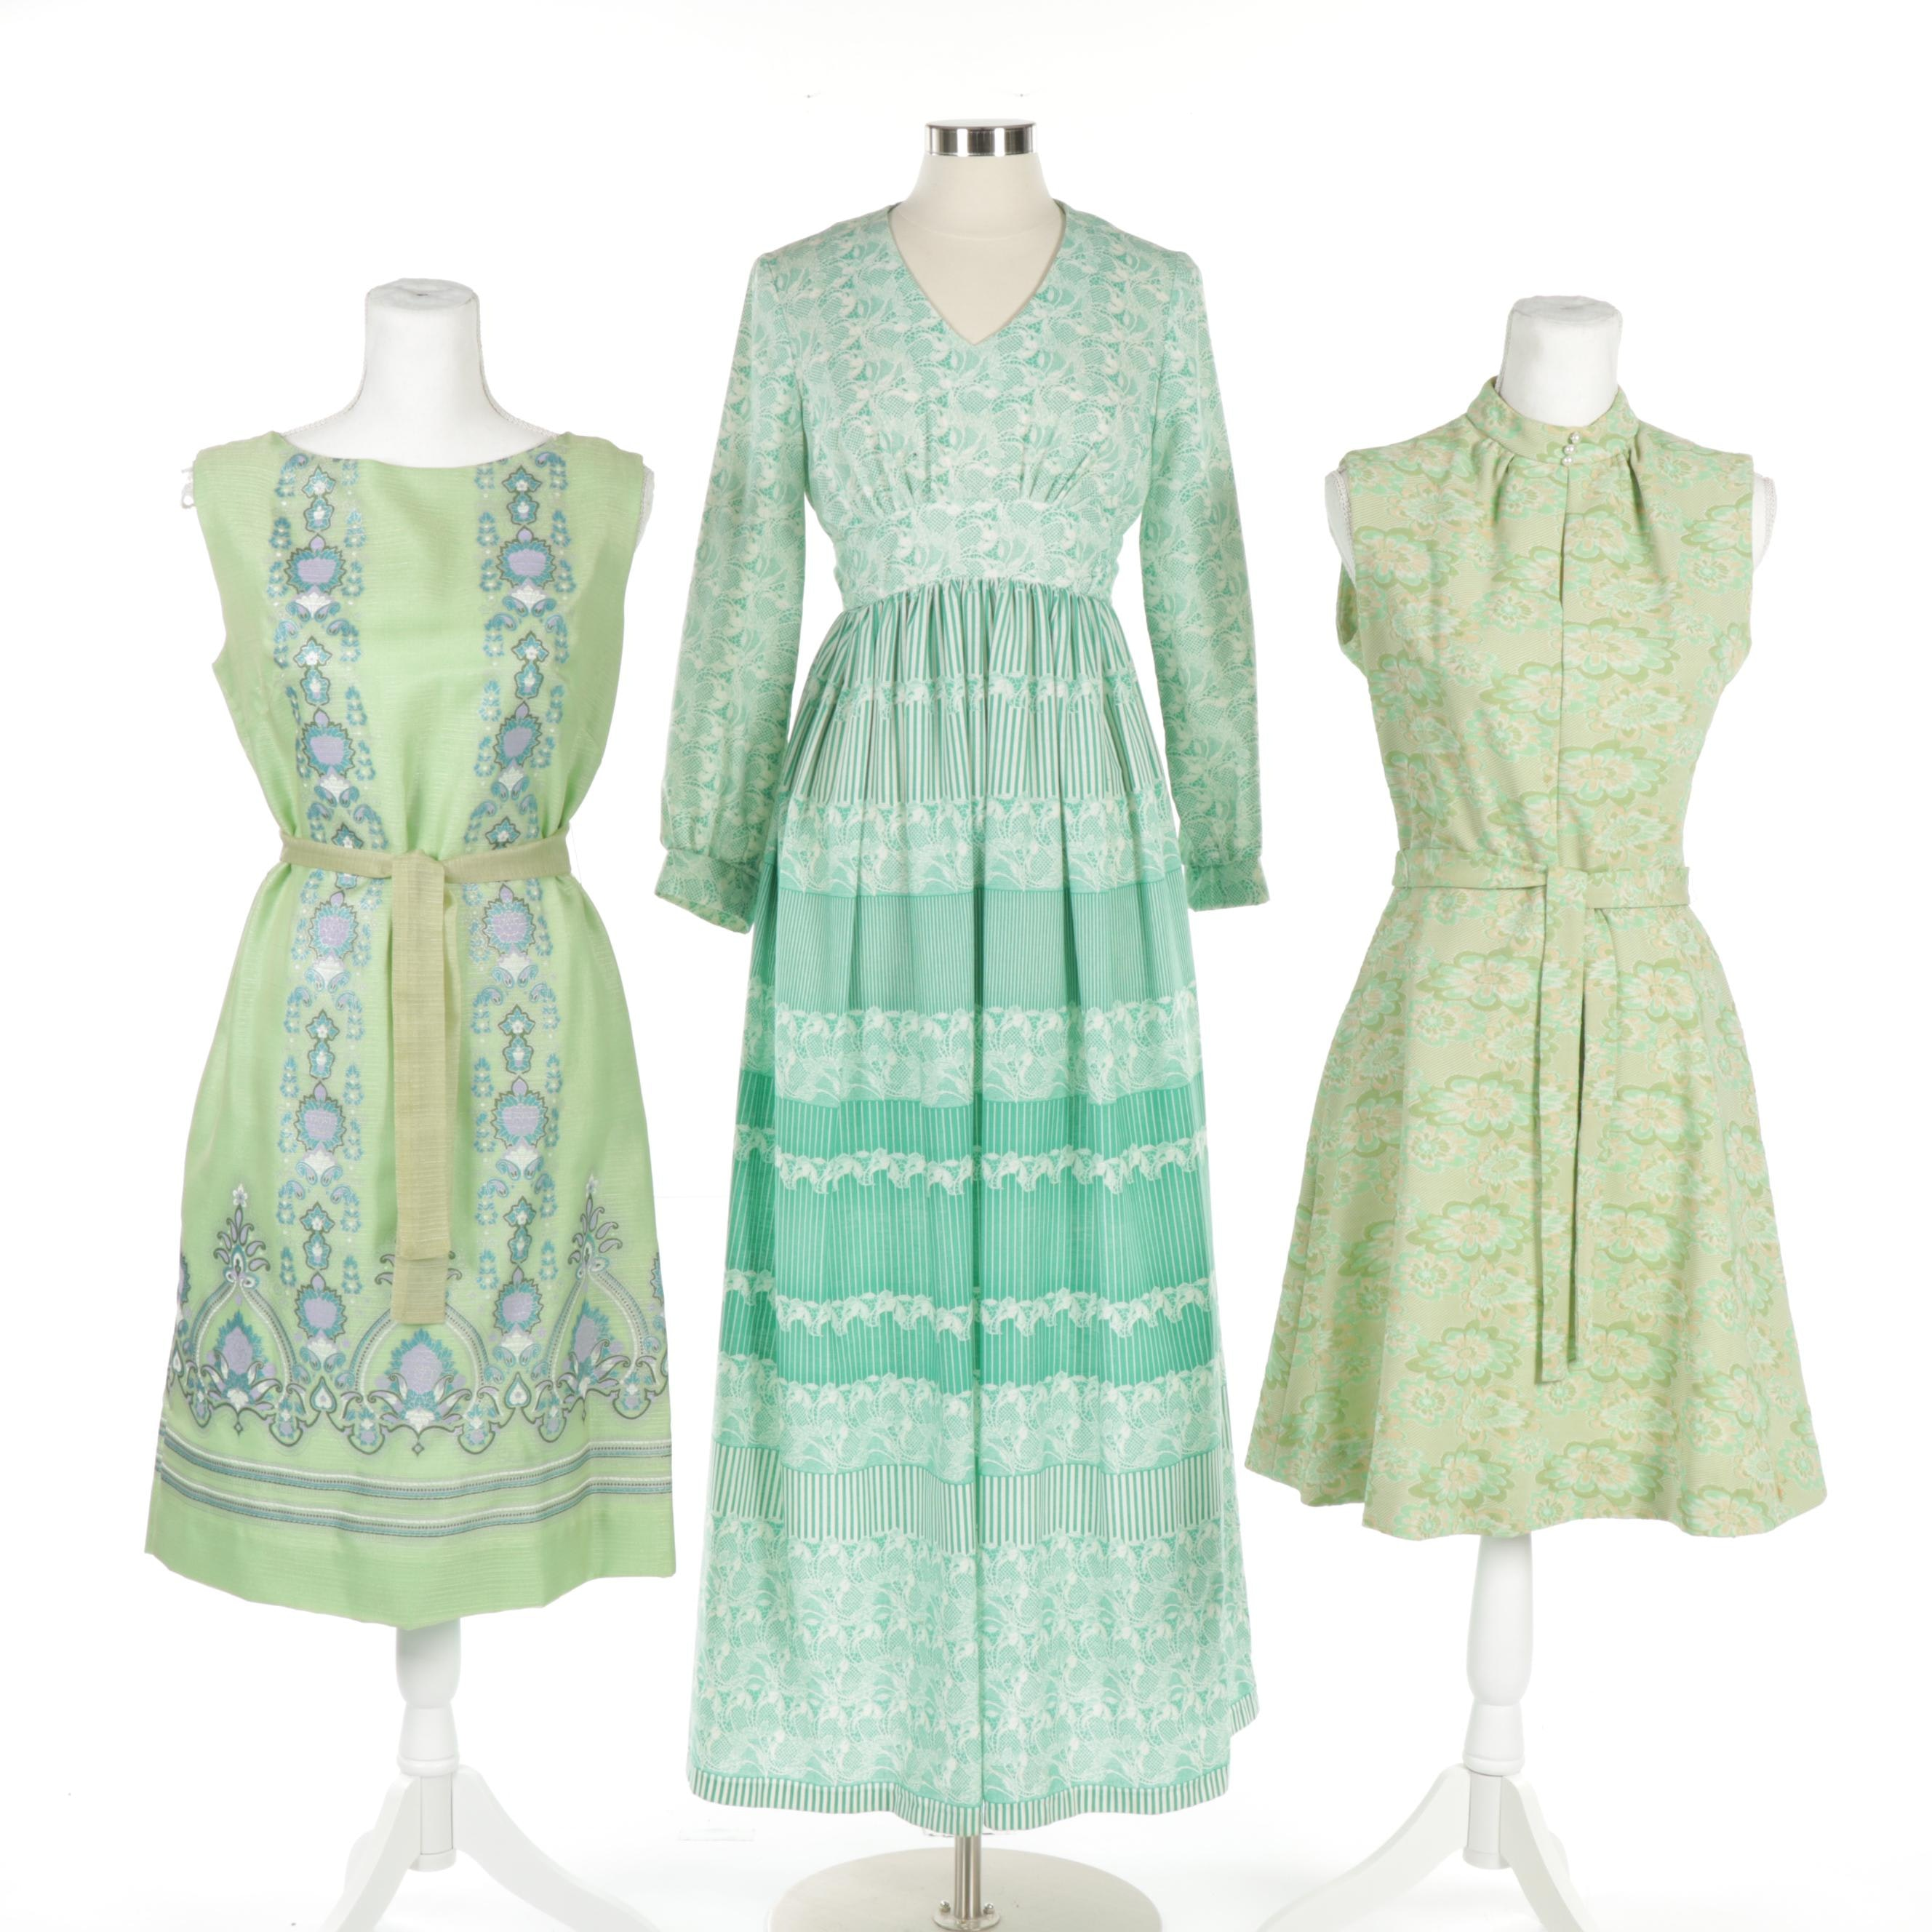 Women's Dresses with Alfred Shaheen and Montgomery Ward, Vintage